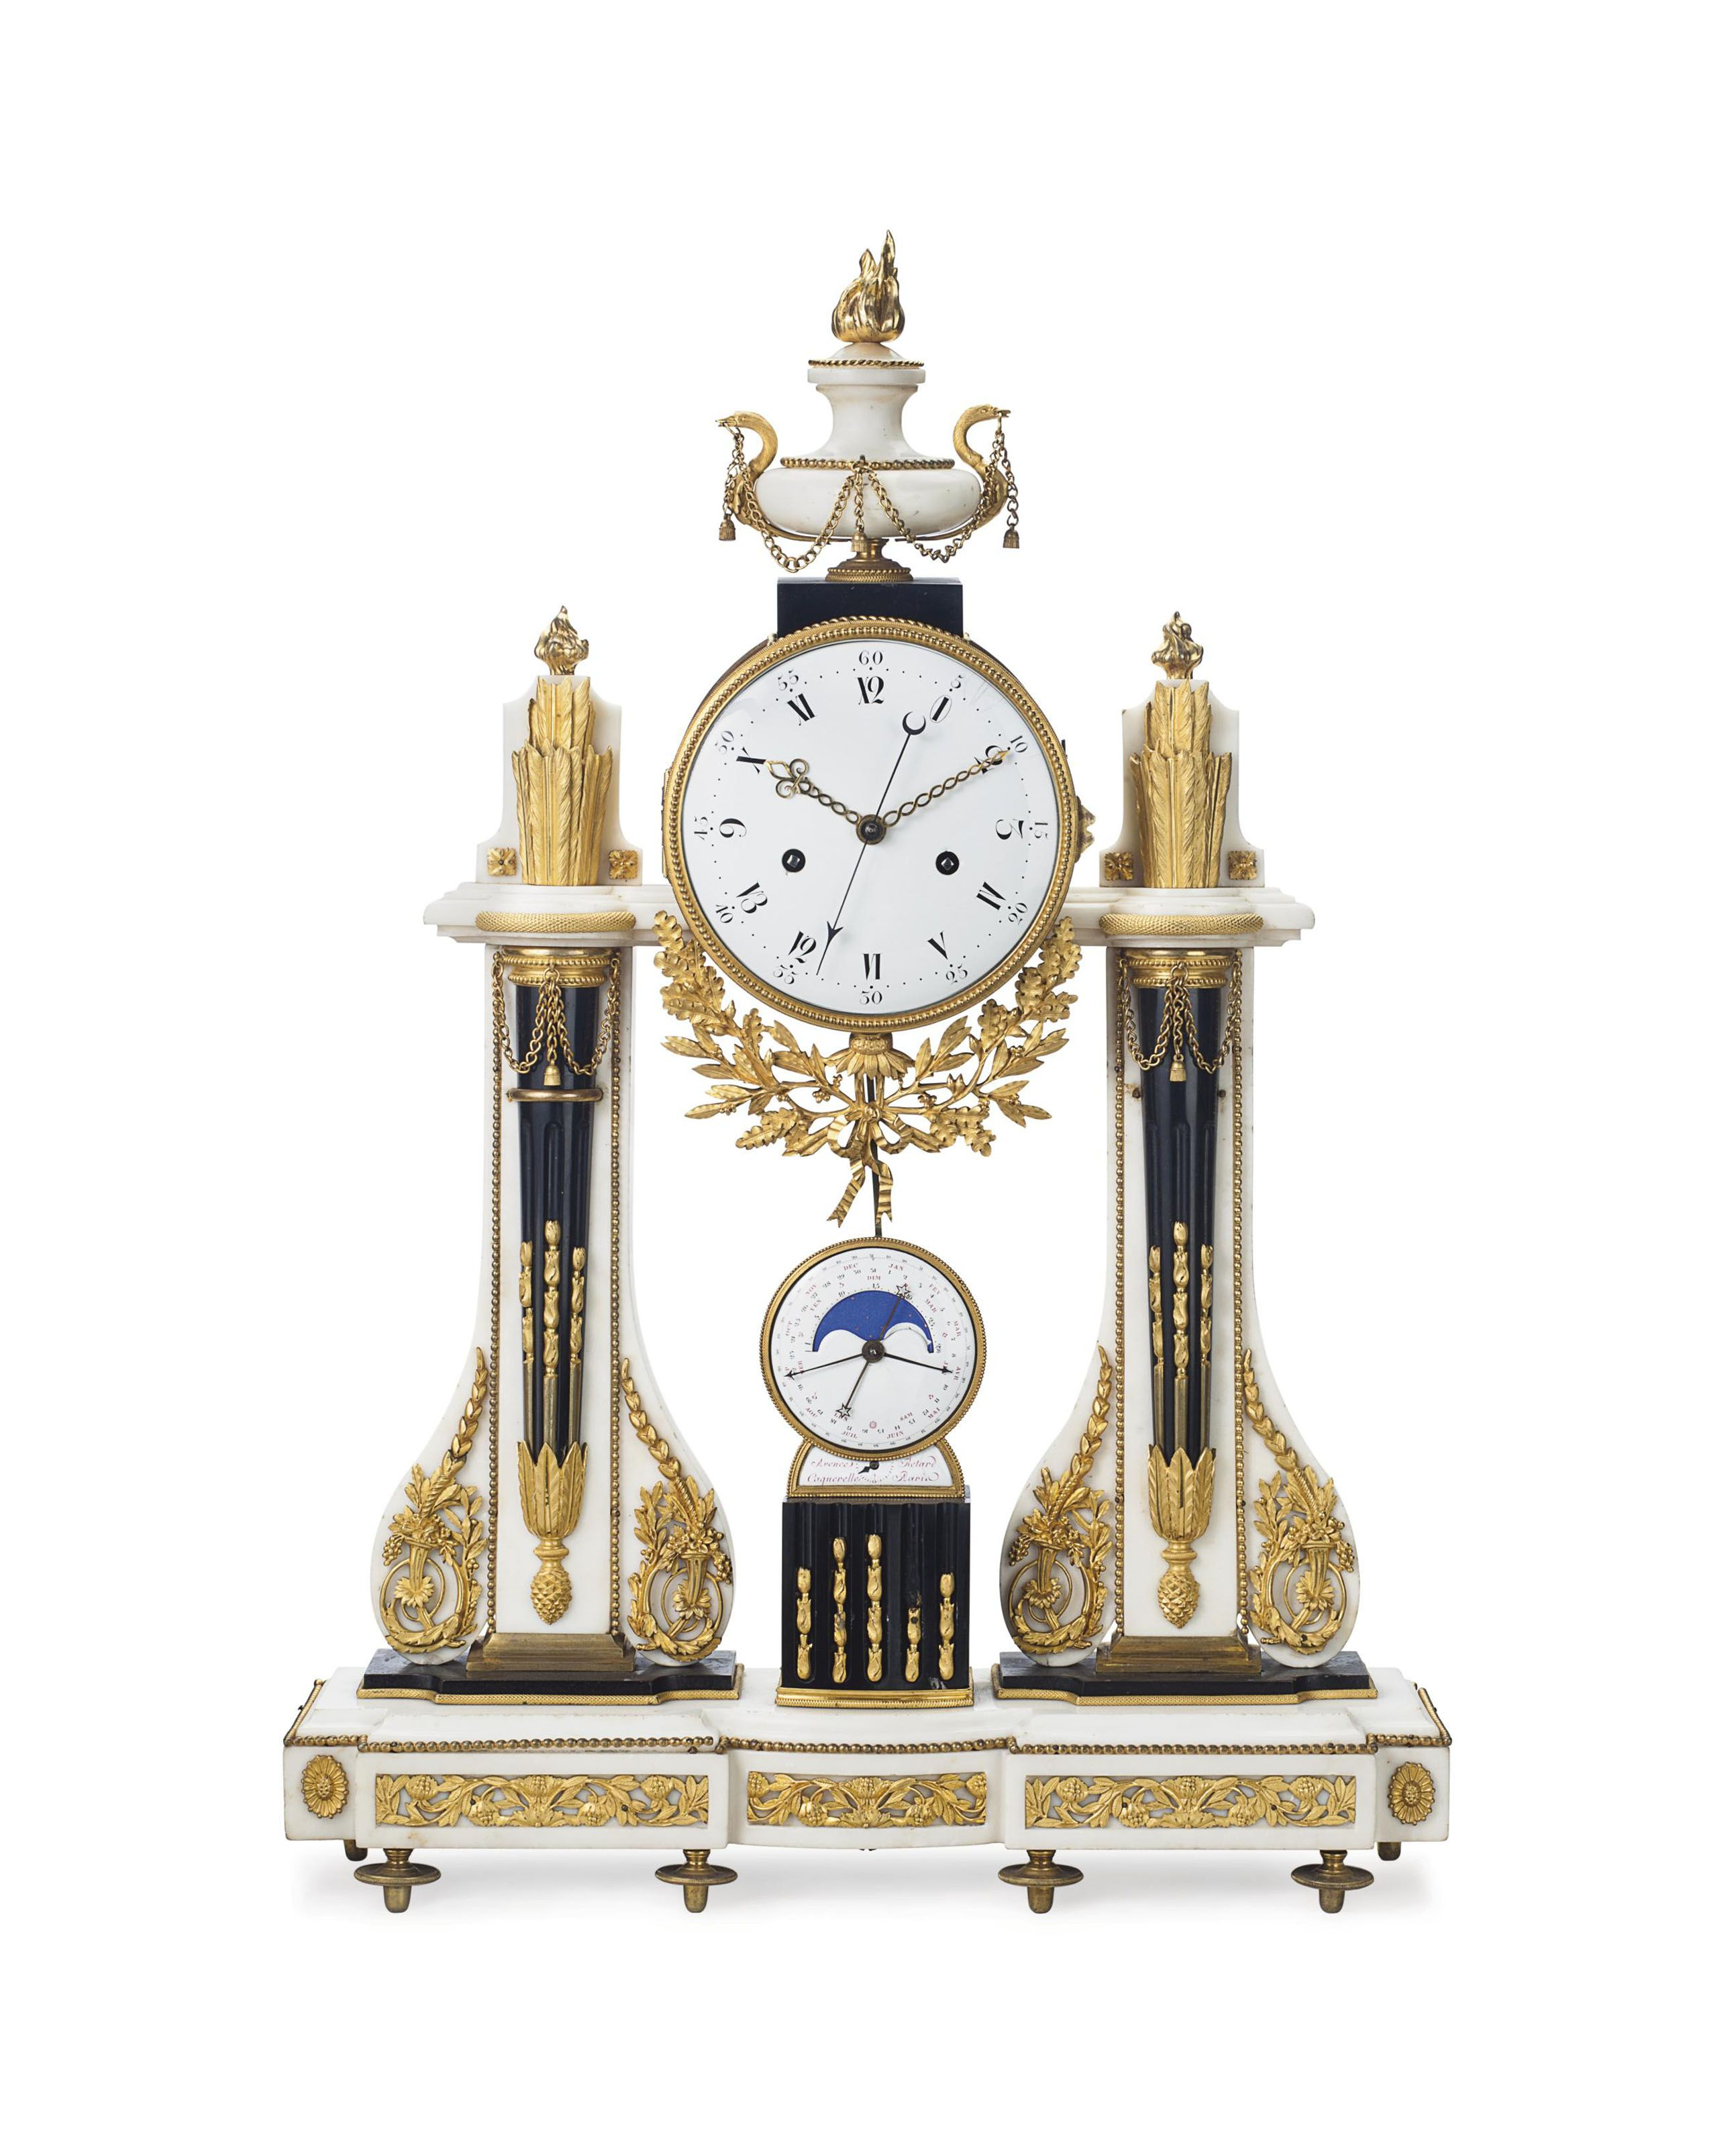 Date Unspecified A Louis Xvi Ormolu Mounted White And Black Marble Portico Clock By Caquerelle Paris Late 18th Ce French Antique Clocks Clock Antique Clocks